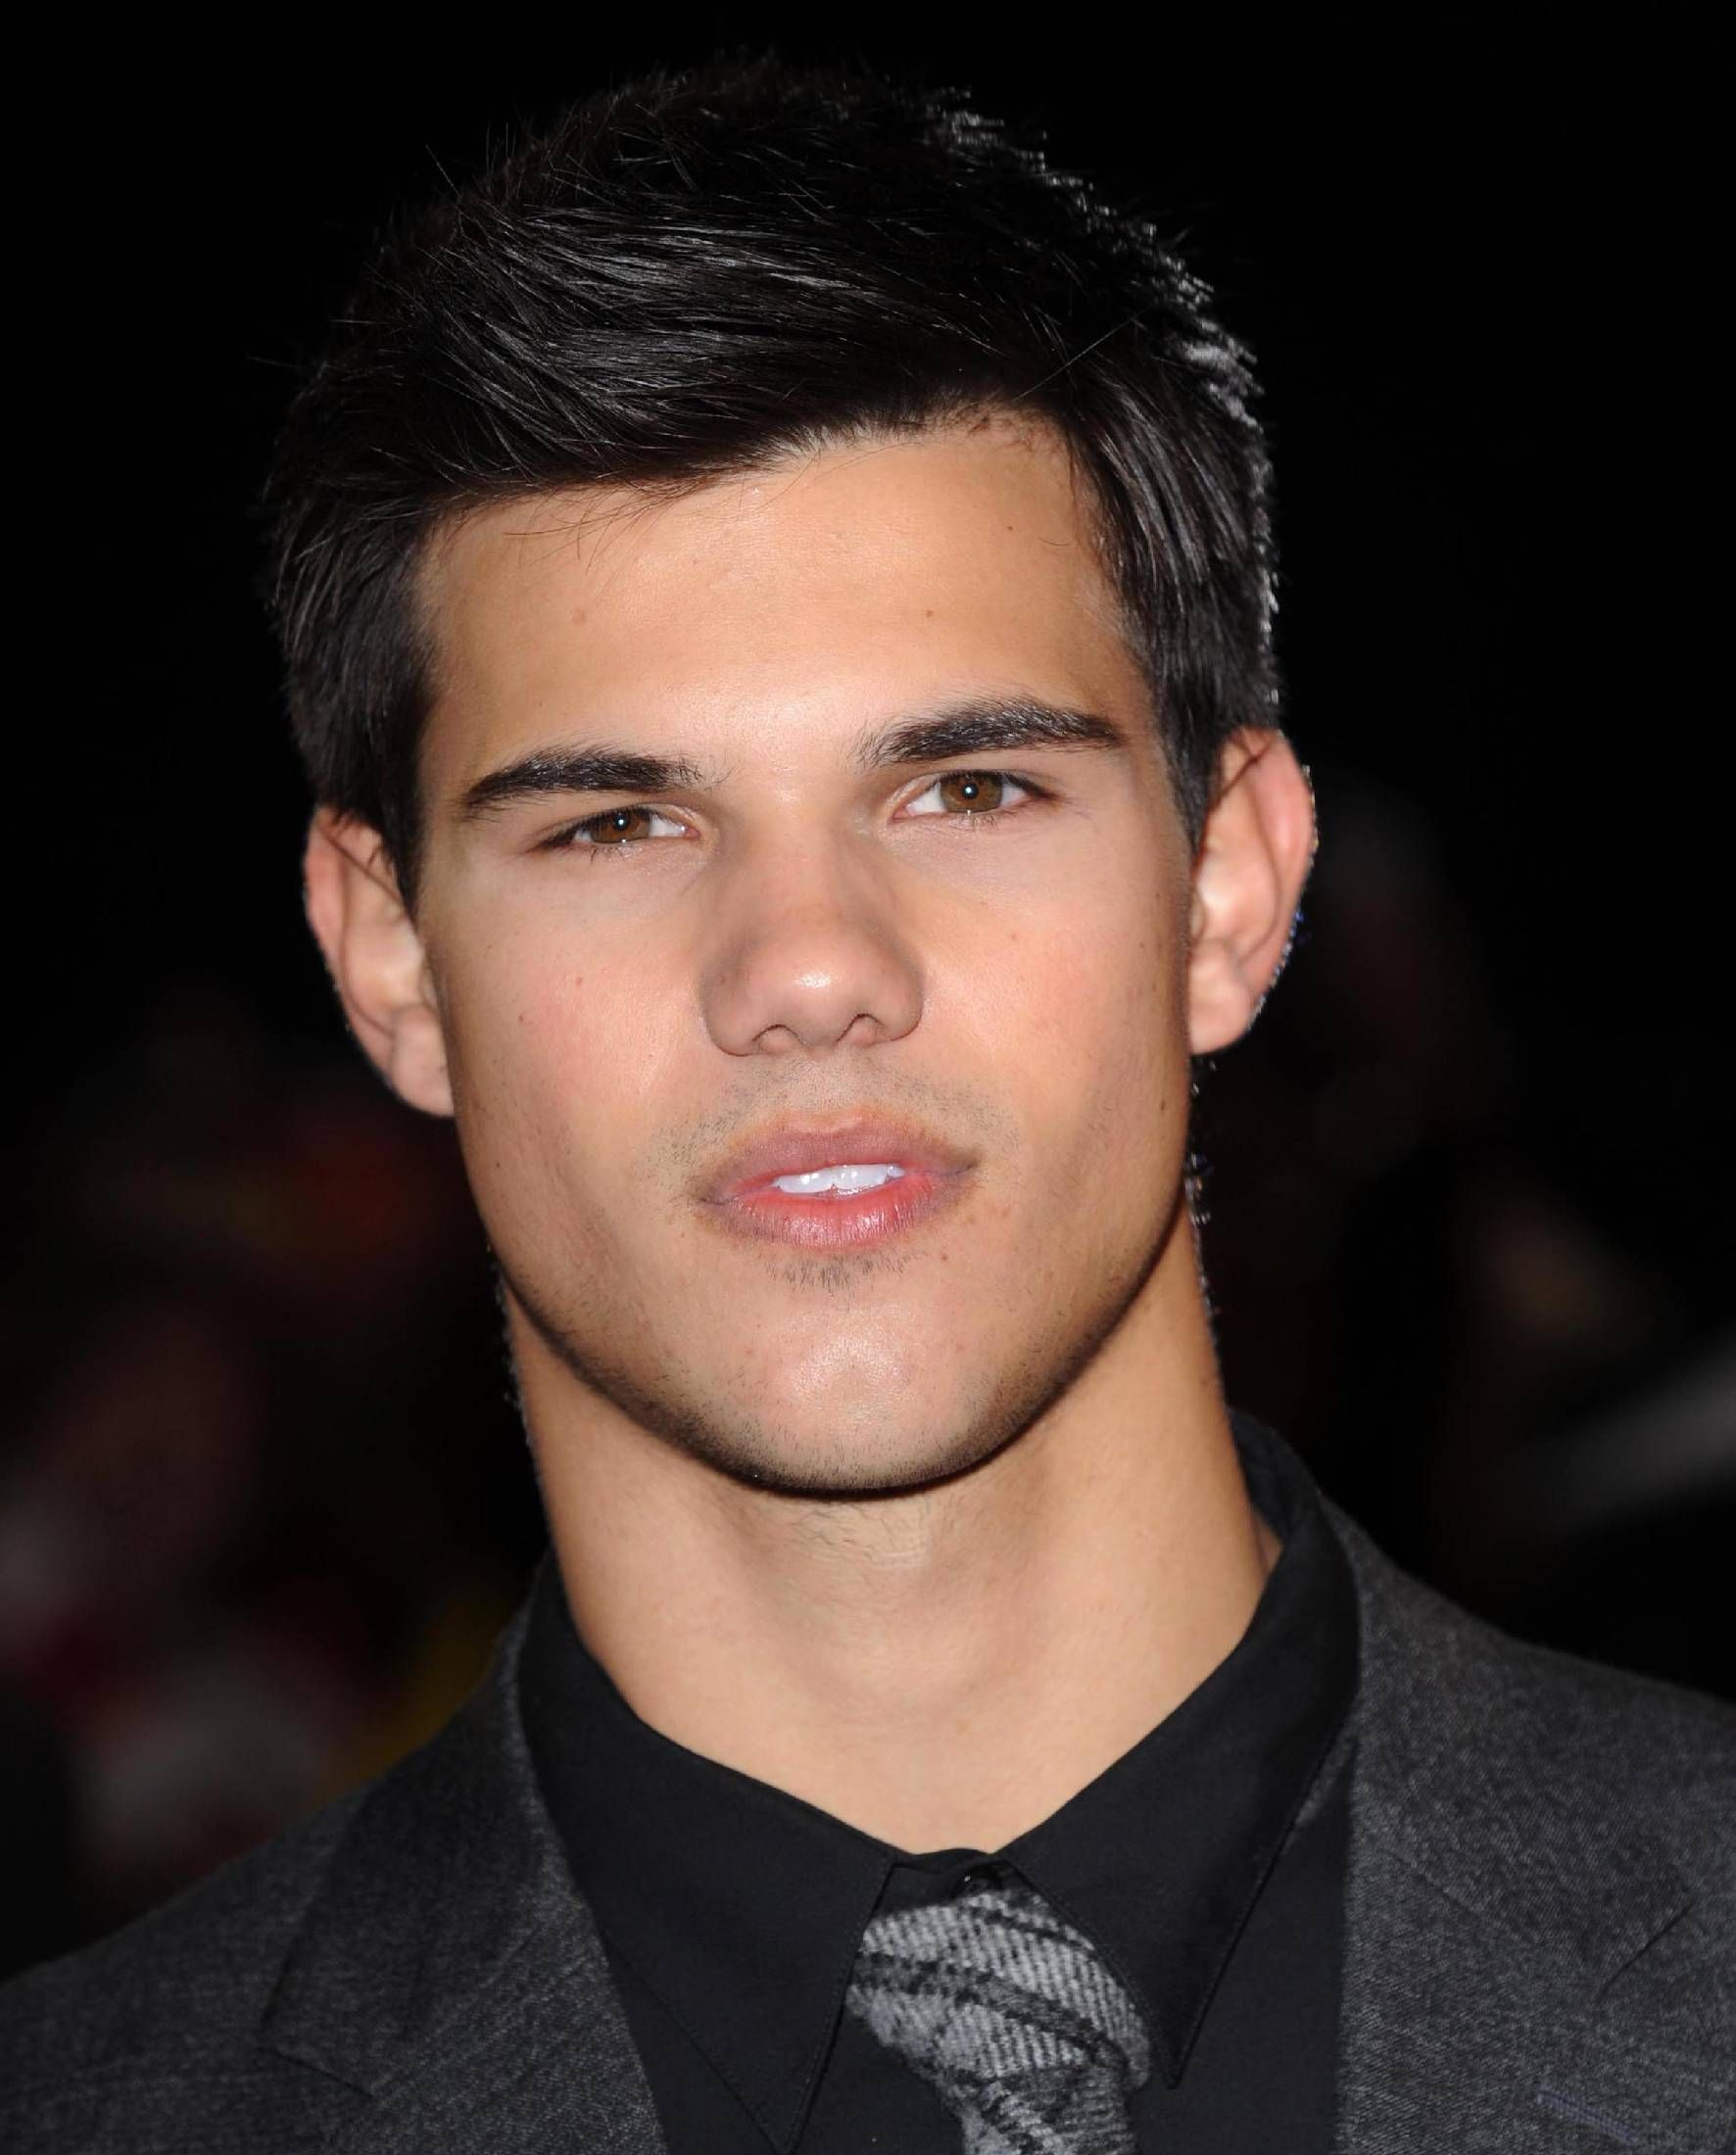 Taylor Lautner images taylor lautner HD wallpaper and ... Taylor Lautner